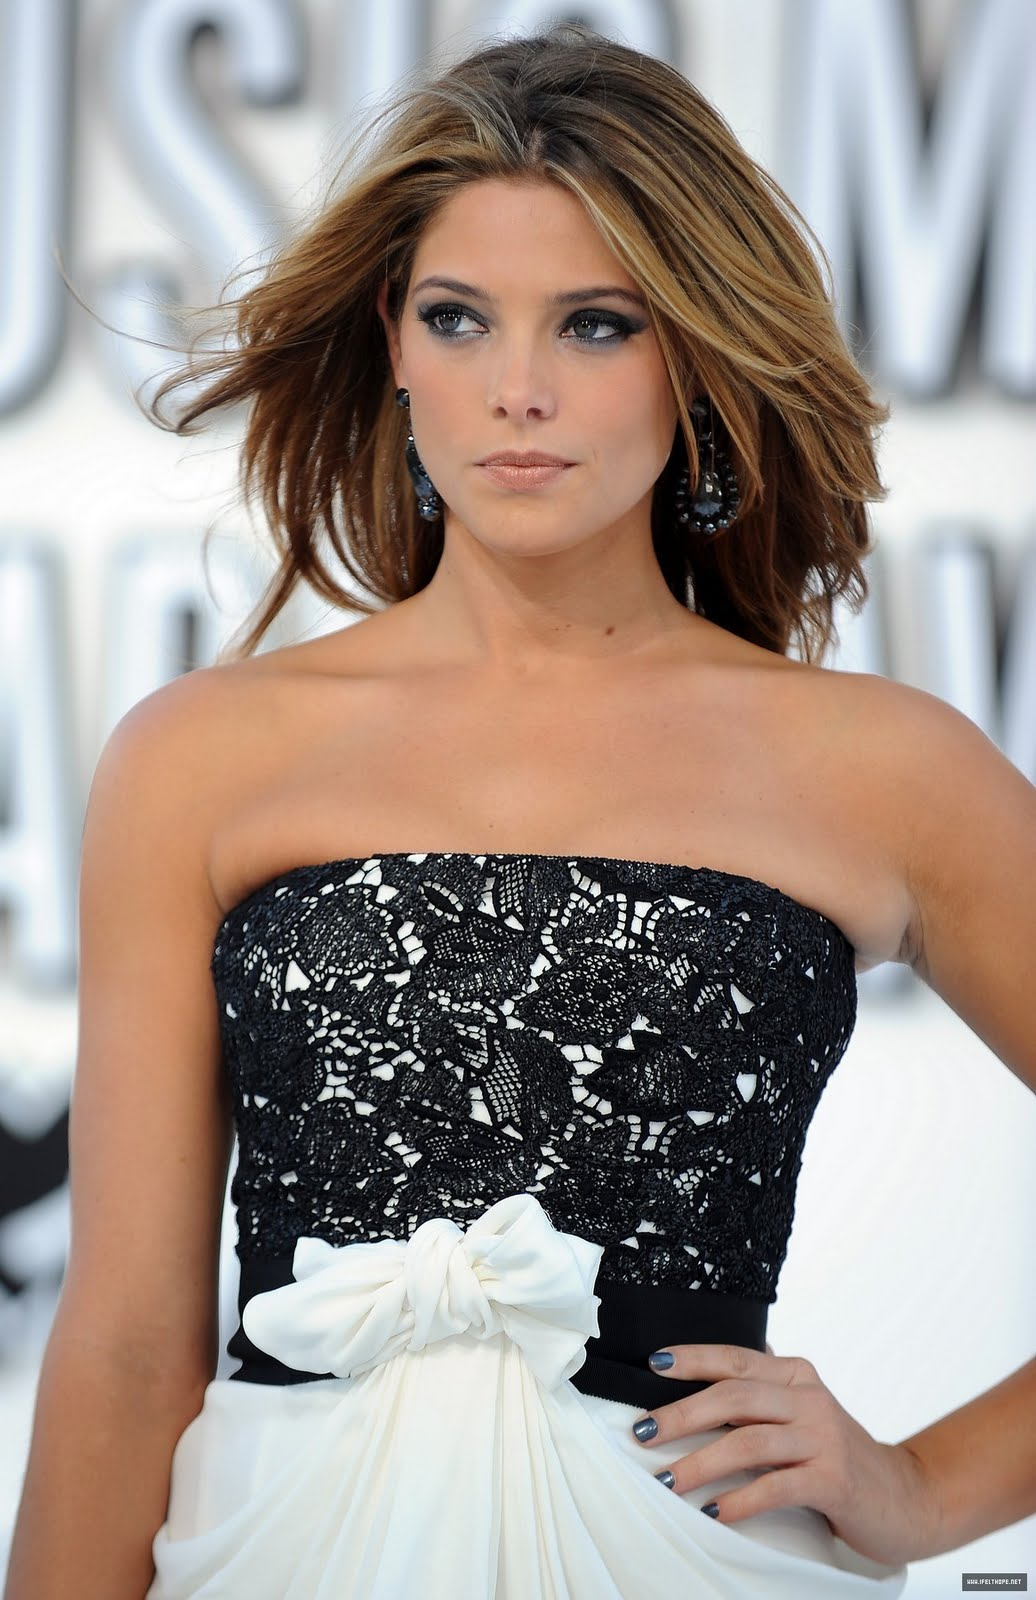 http://1.bp.blogspot.com/_tHaumj7GrMA/TQzxuXyVOvI/AAAAAAAAch0/4sFdDbi1gz0/s1600/2010-MTV-Video-Music-Awards-HQ-ashley-greene-15505245-1165-1800.jpg